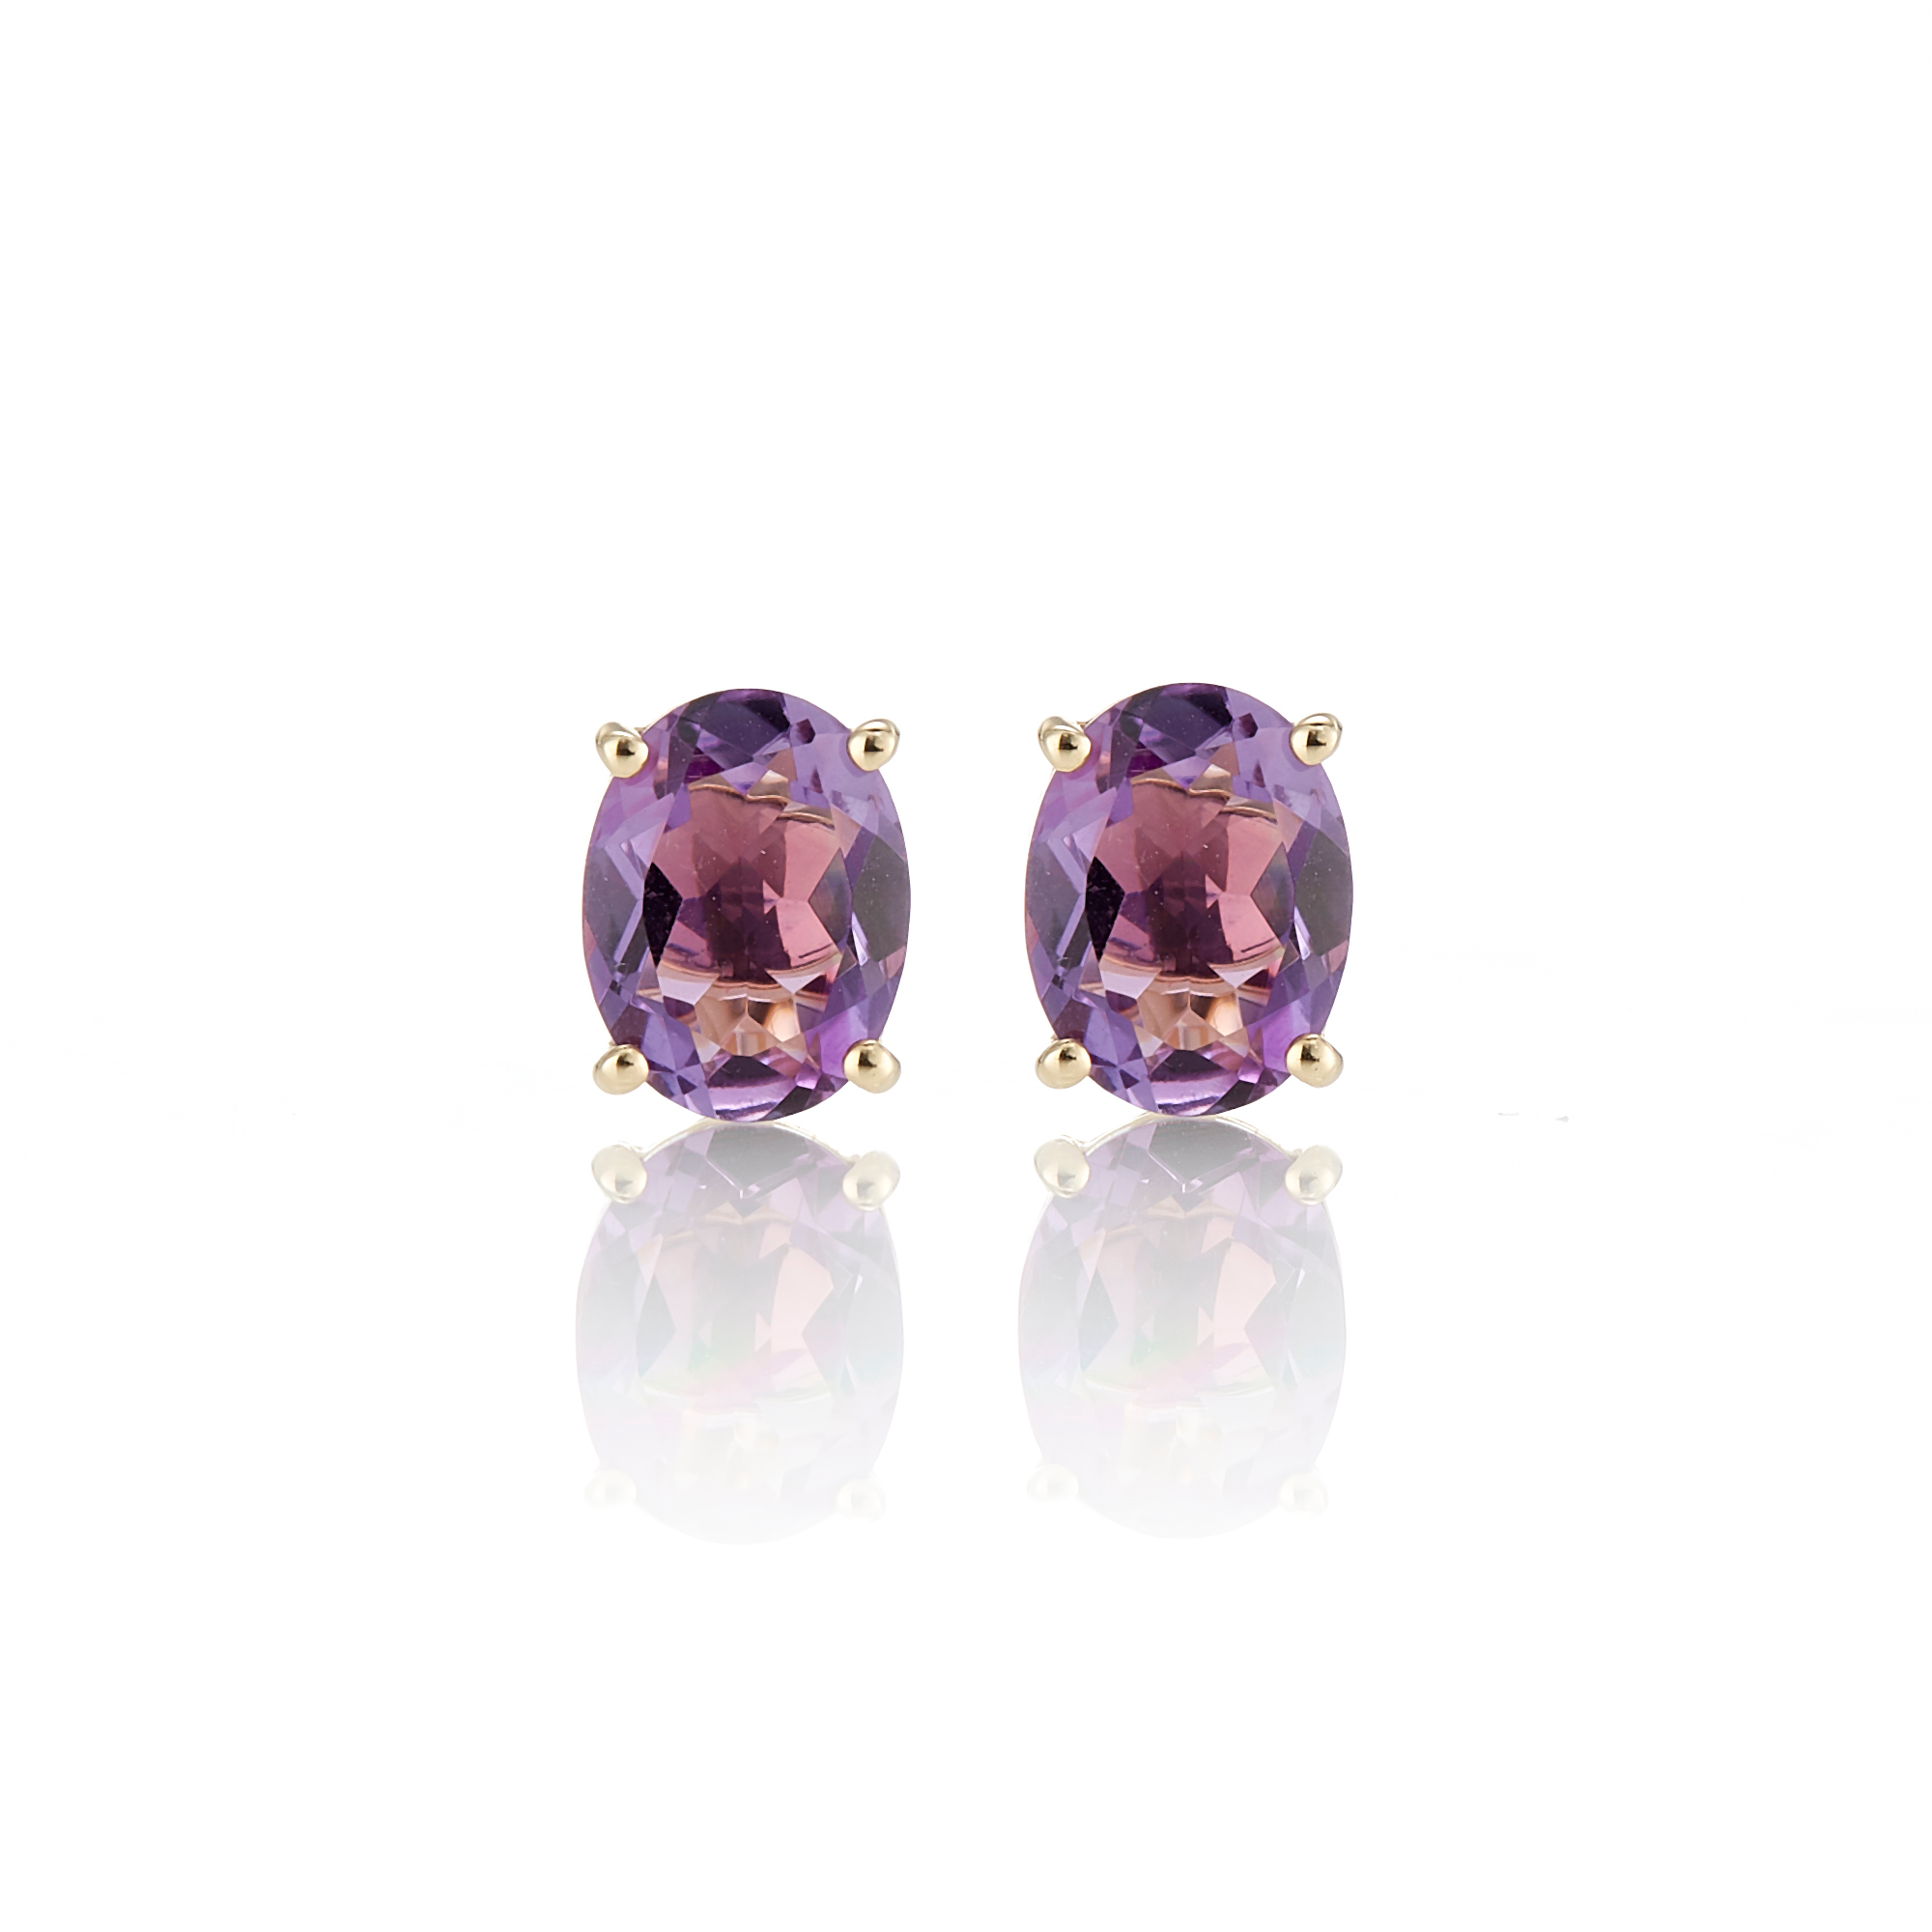 Gumps Faceted Oval Amethyst Stud Earrings